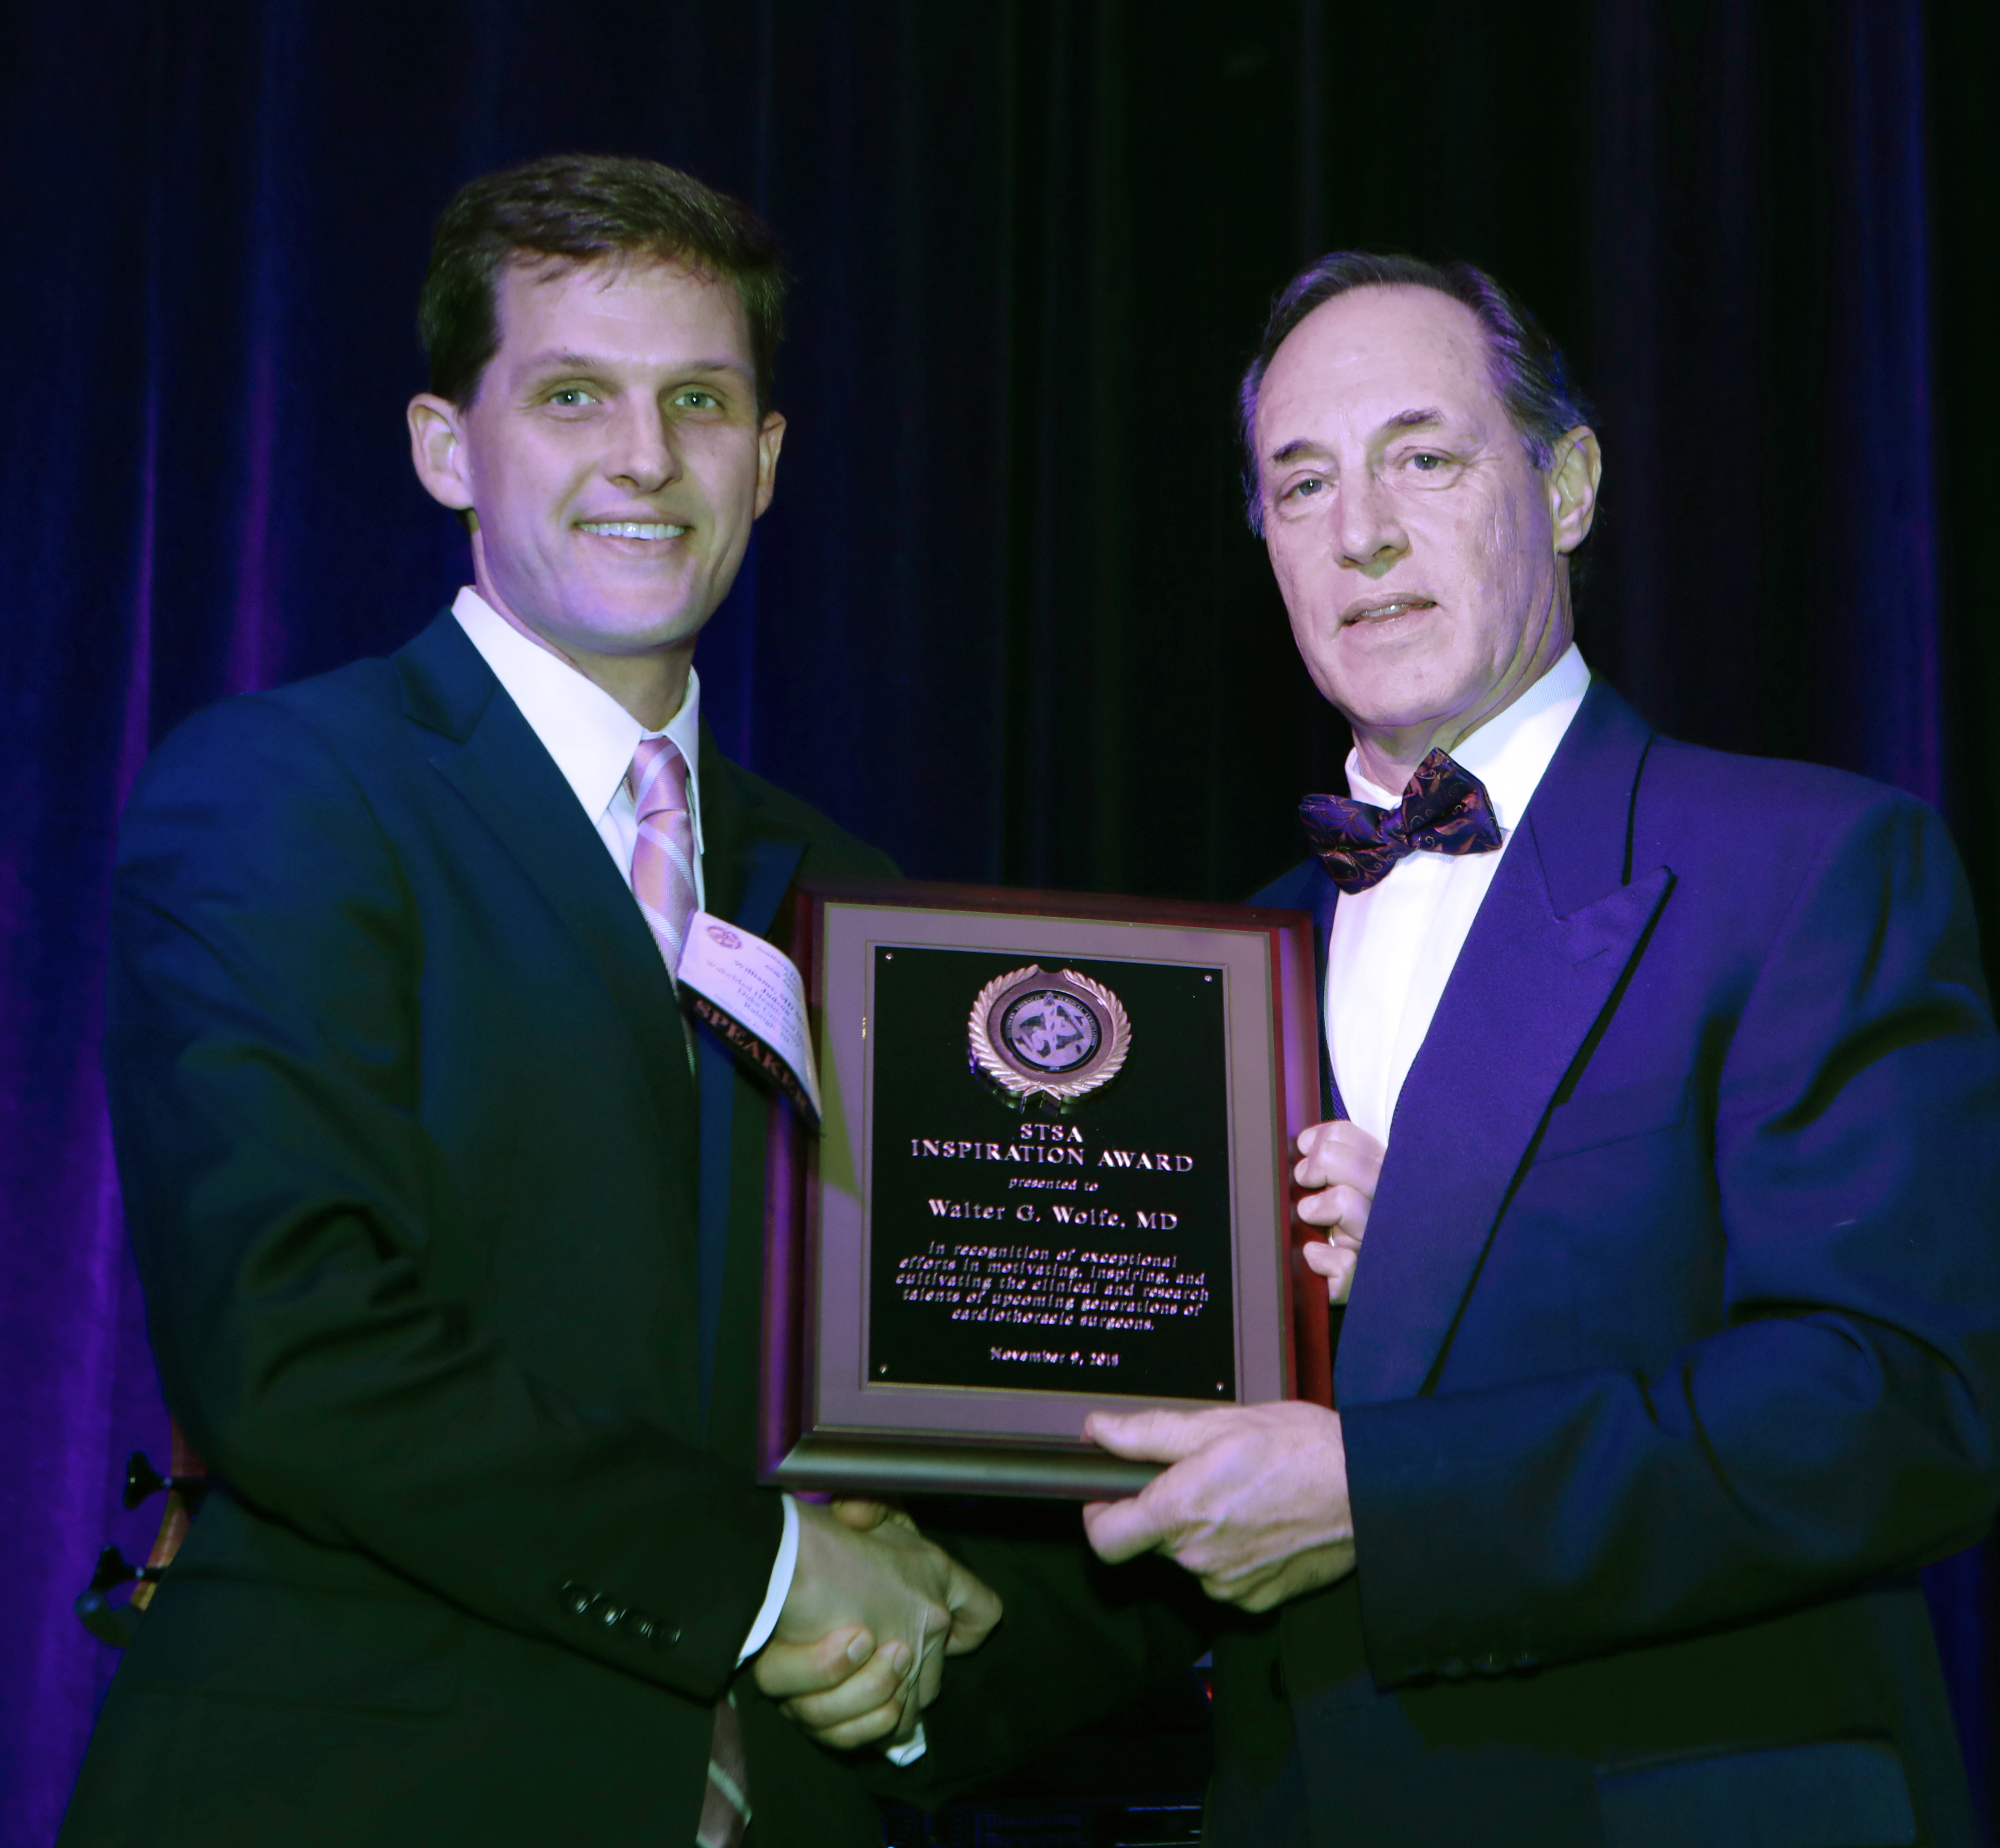 2018 STSA Inspiration Award Recipient: Walter Wolfe, MD